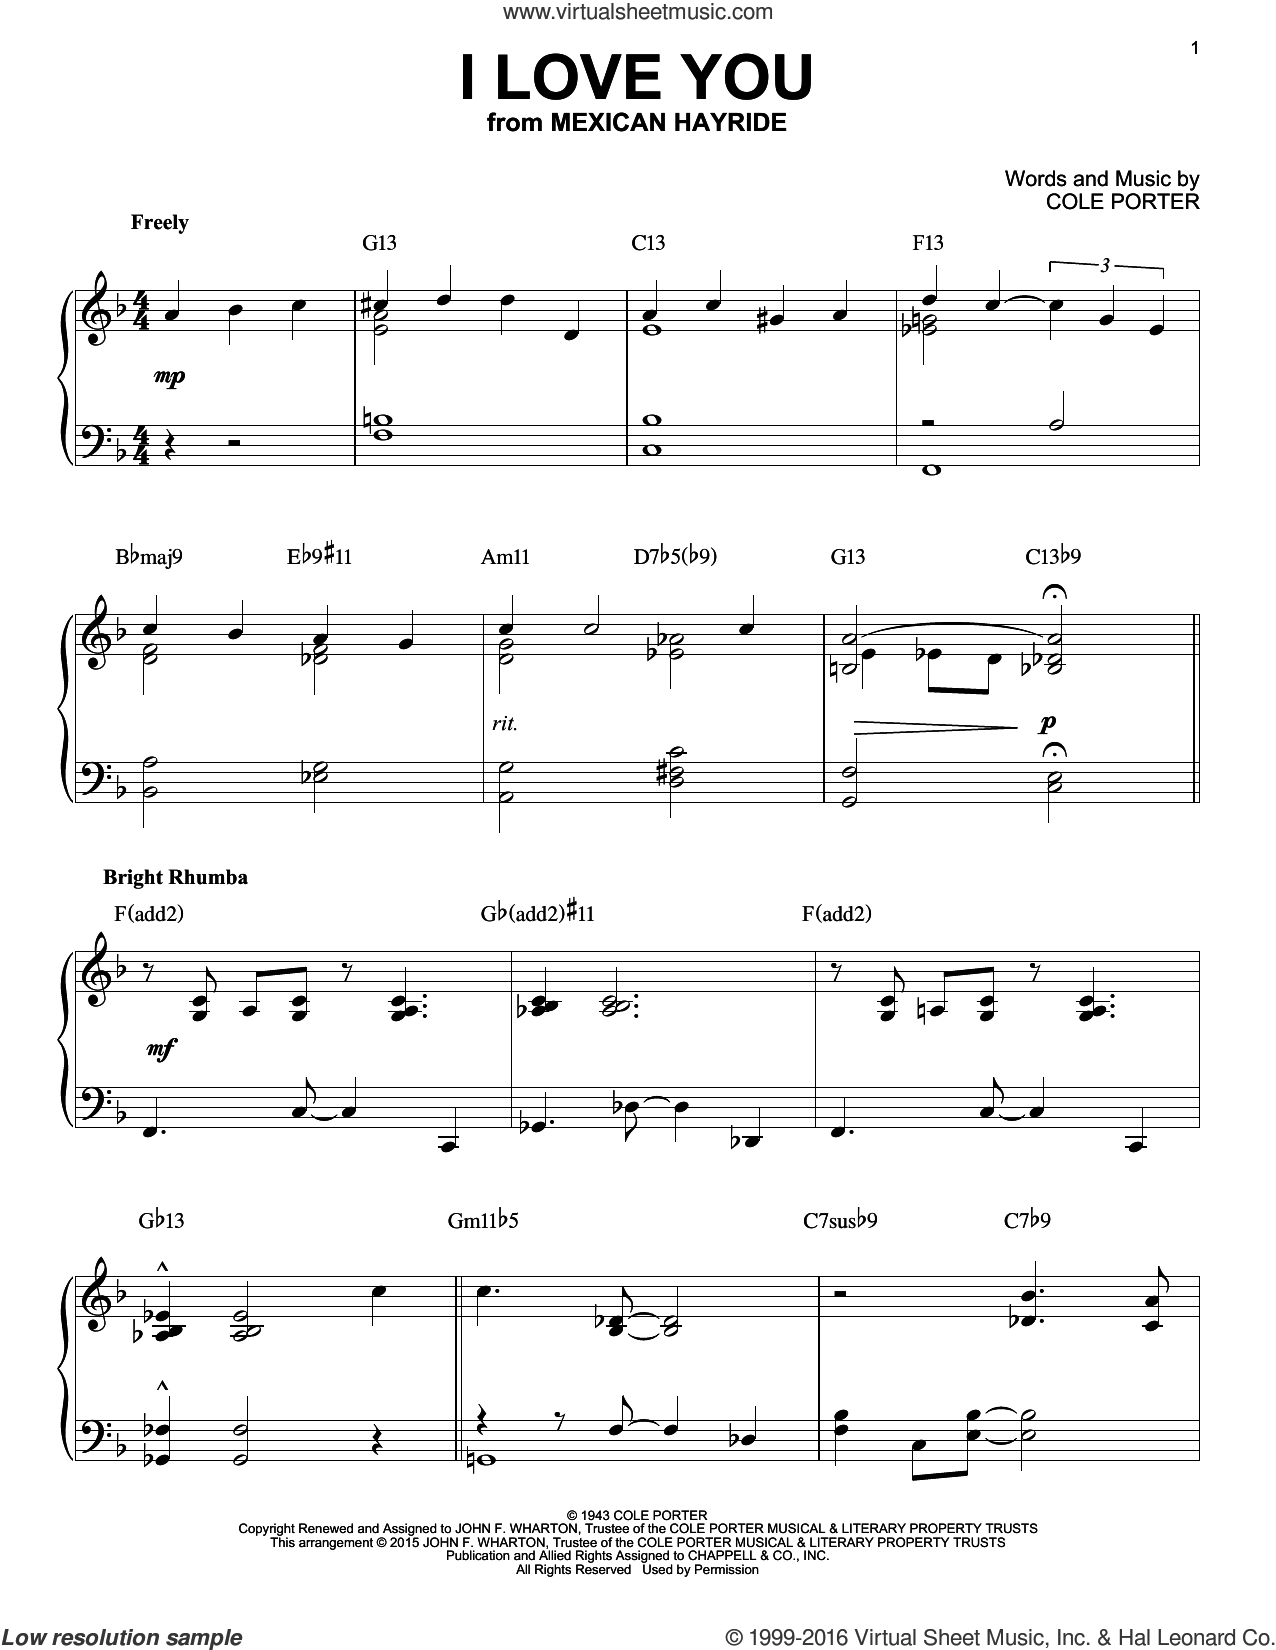 I Love You sheet music for piano solo by Cole Porter, intermediate